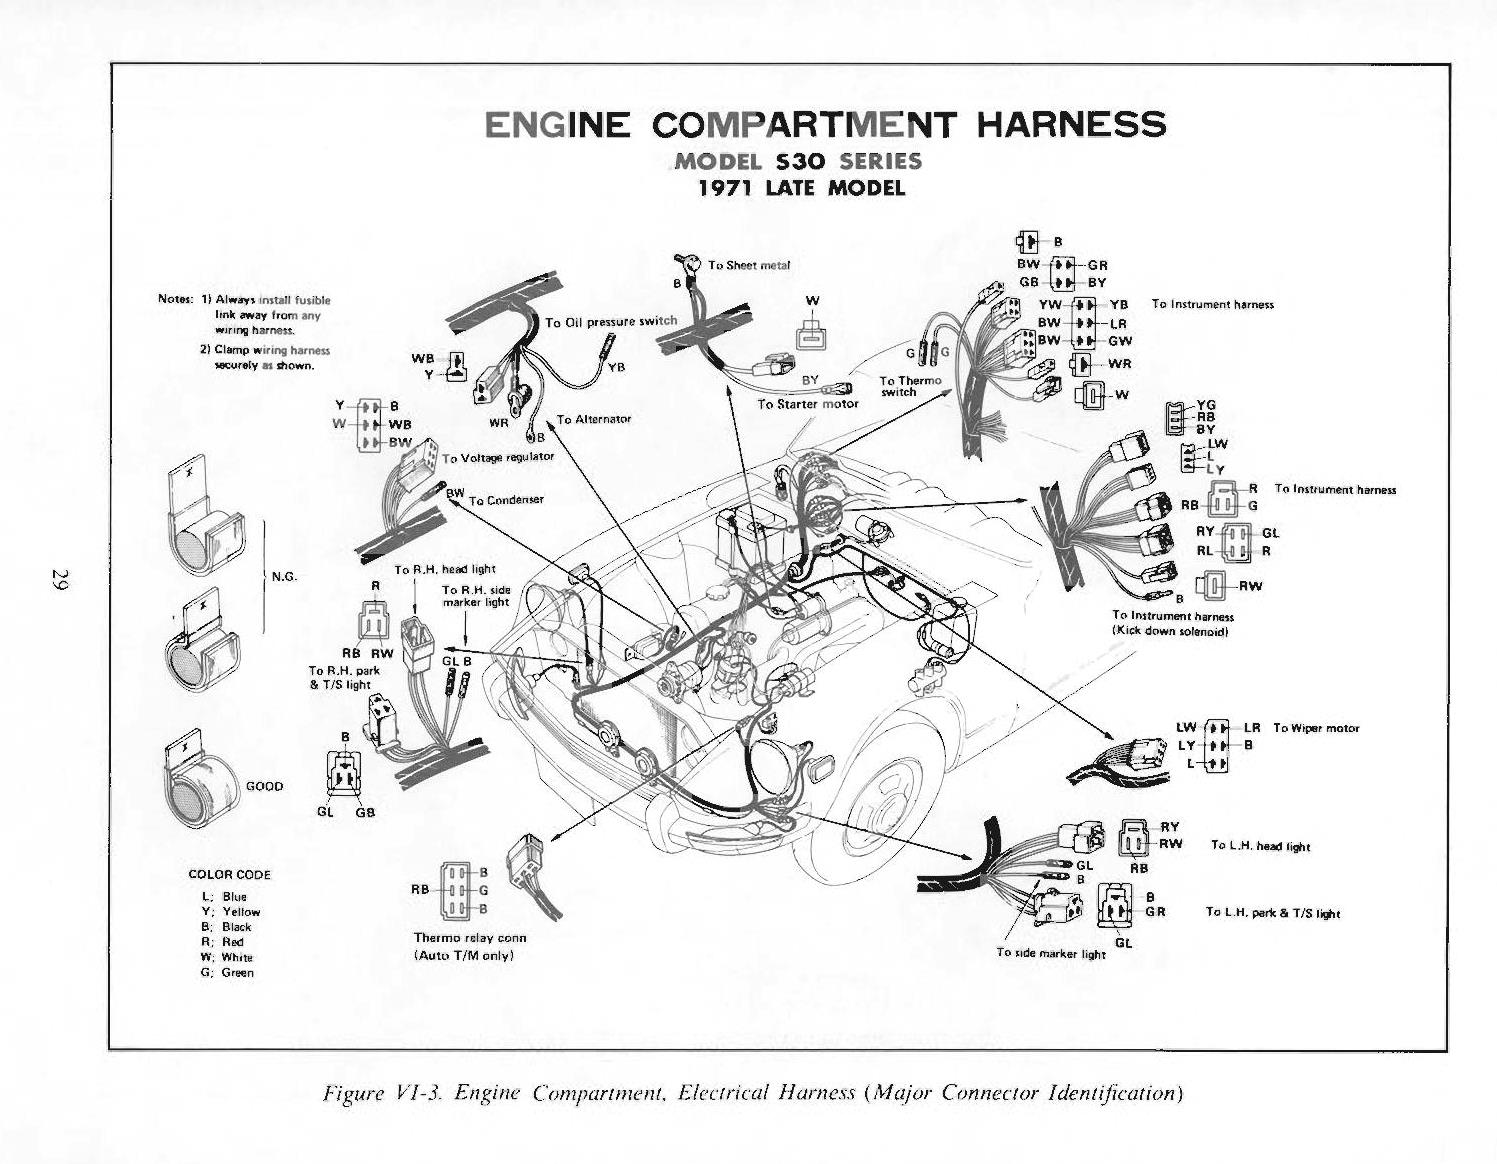 Datsun 280zx Engine Diagram Schematics Wiring Diagrams Racing Fuse Box U2022 Rh Friendsoffido Co Engines Performance